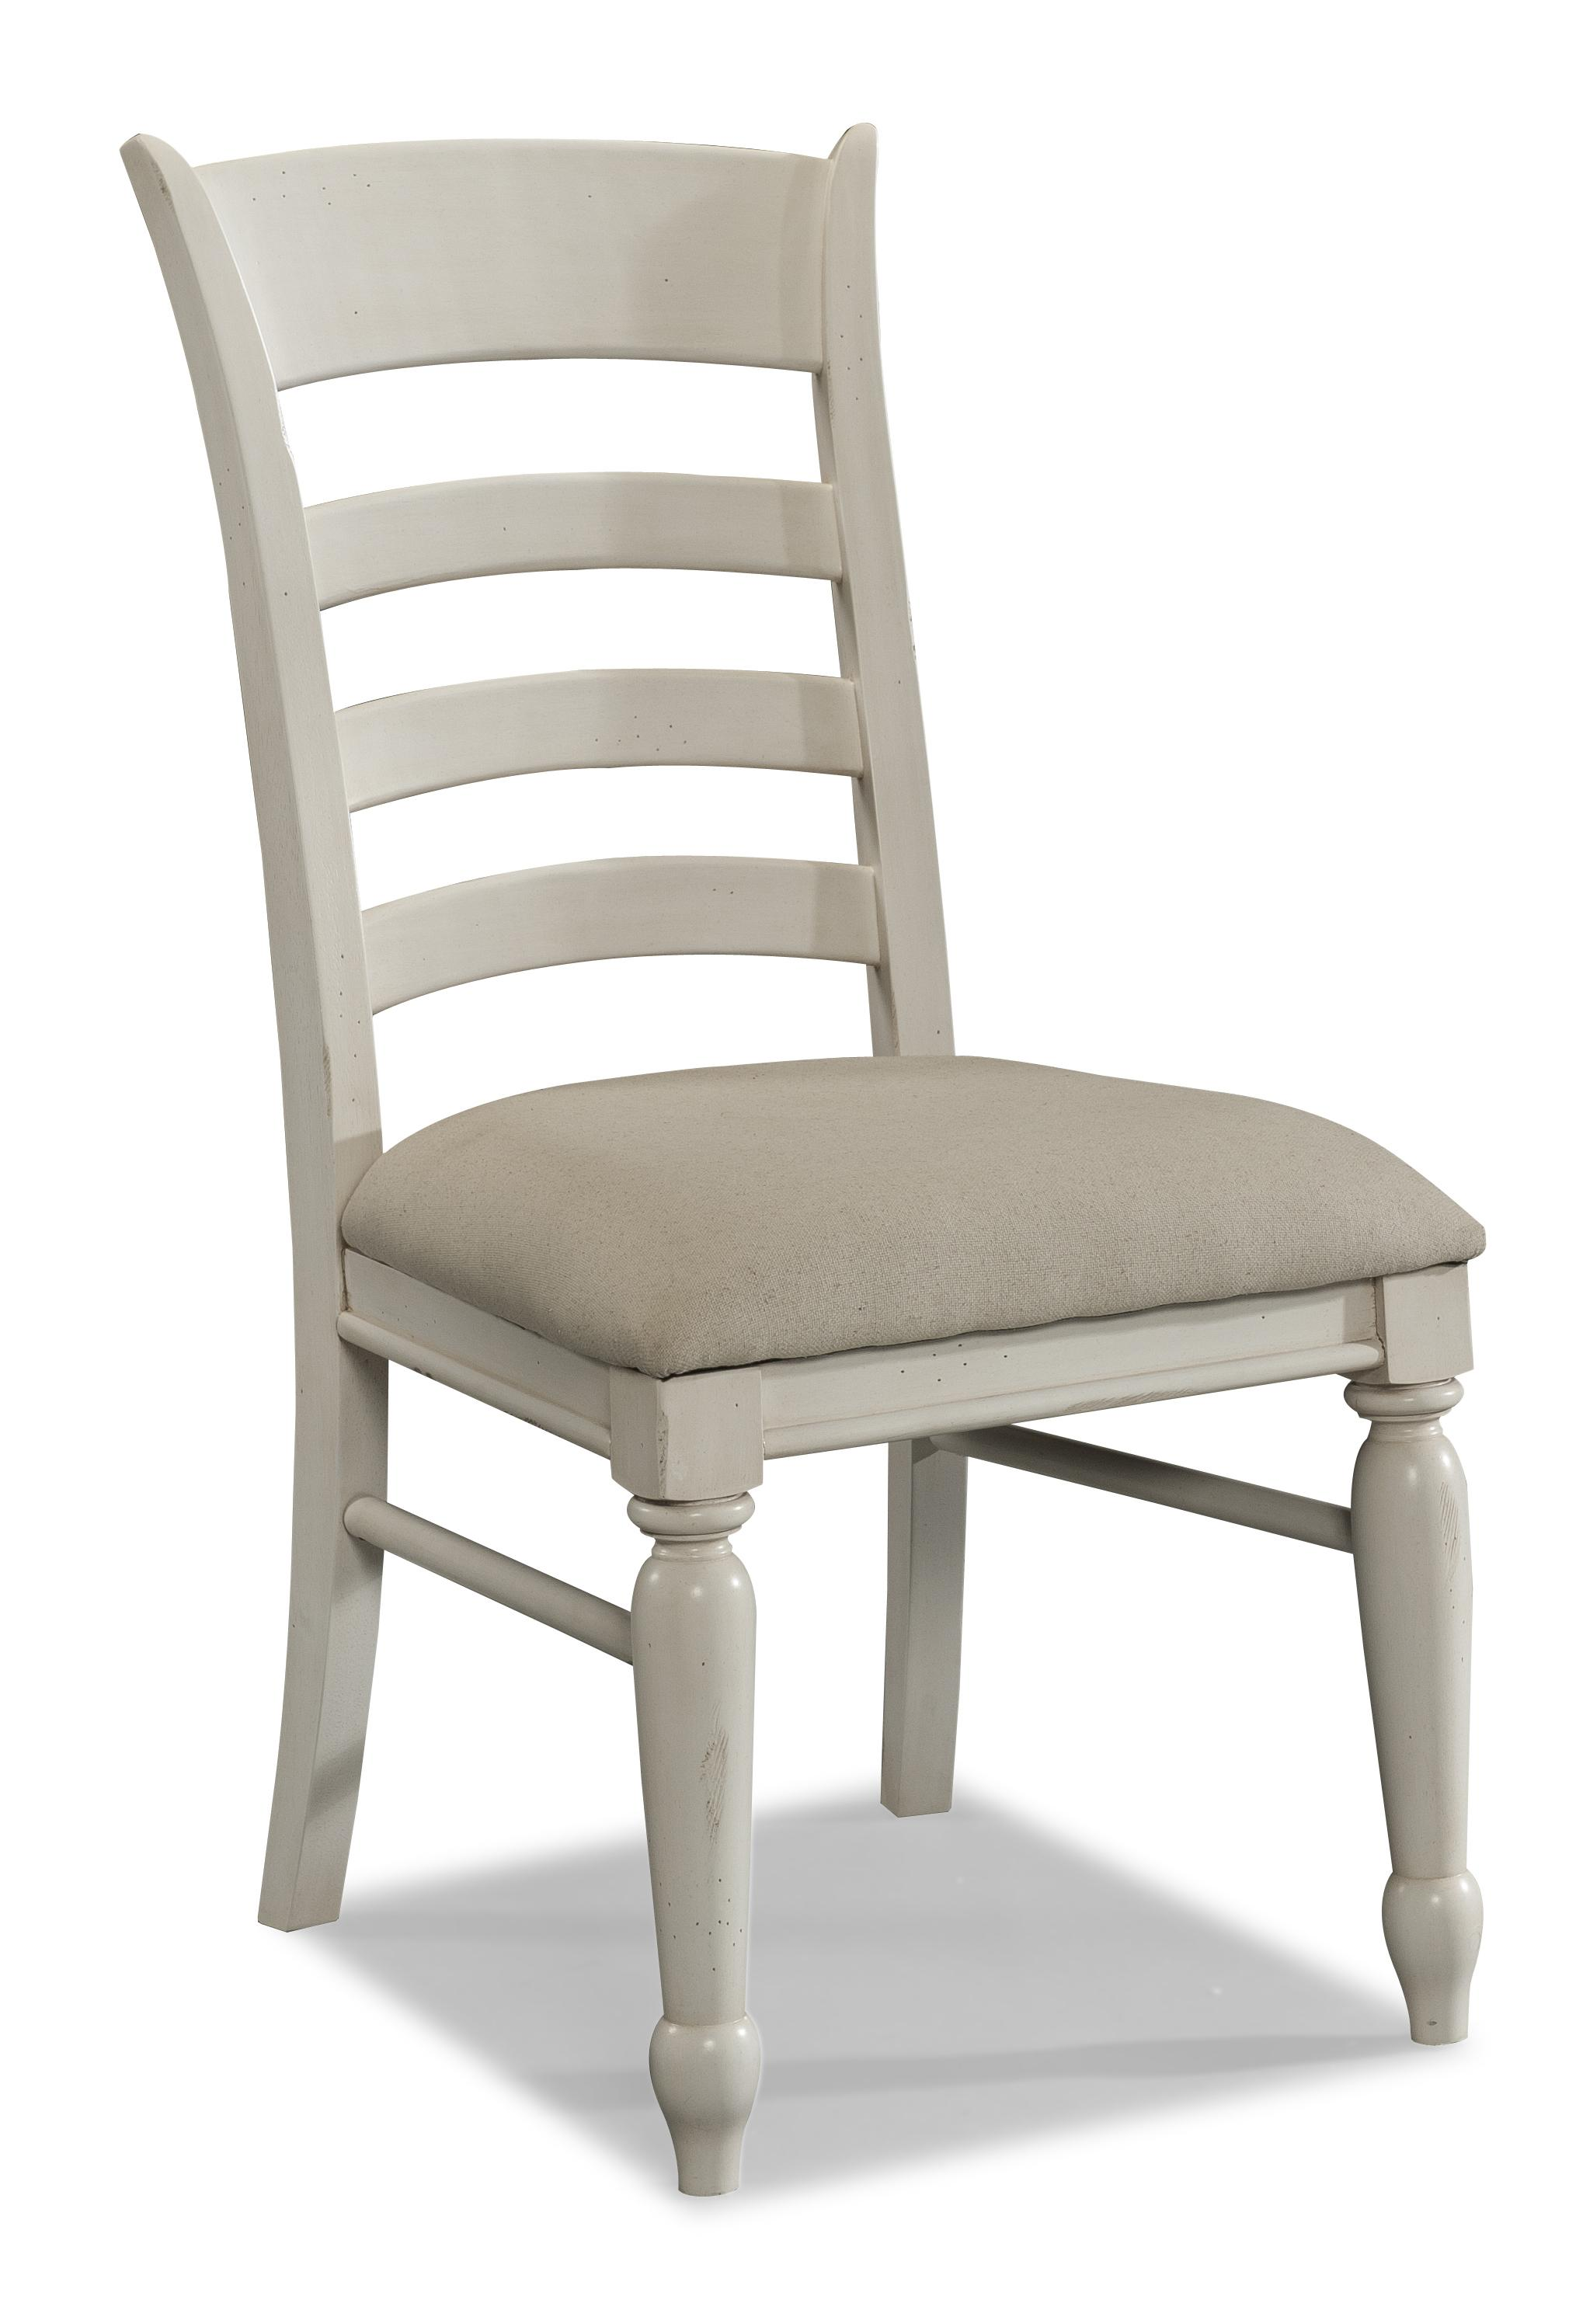 Easton Collection Sea Breeze White Ladder Back Side Chair - Item Number: 424-901 DRC